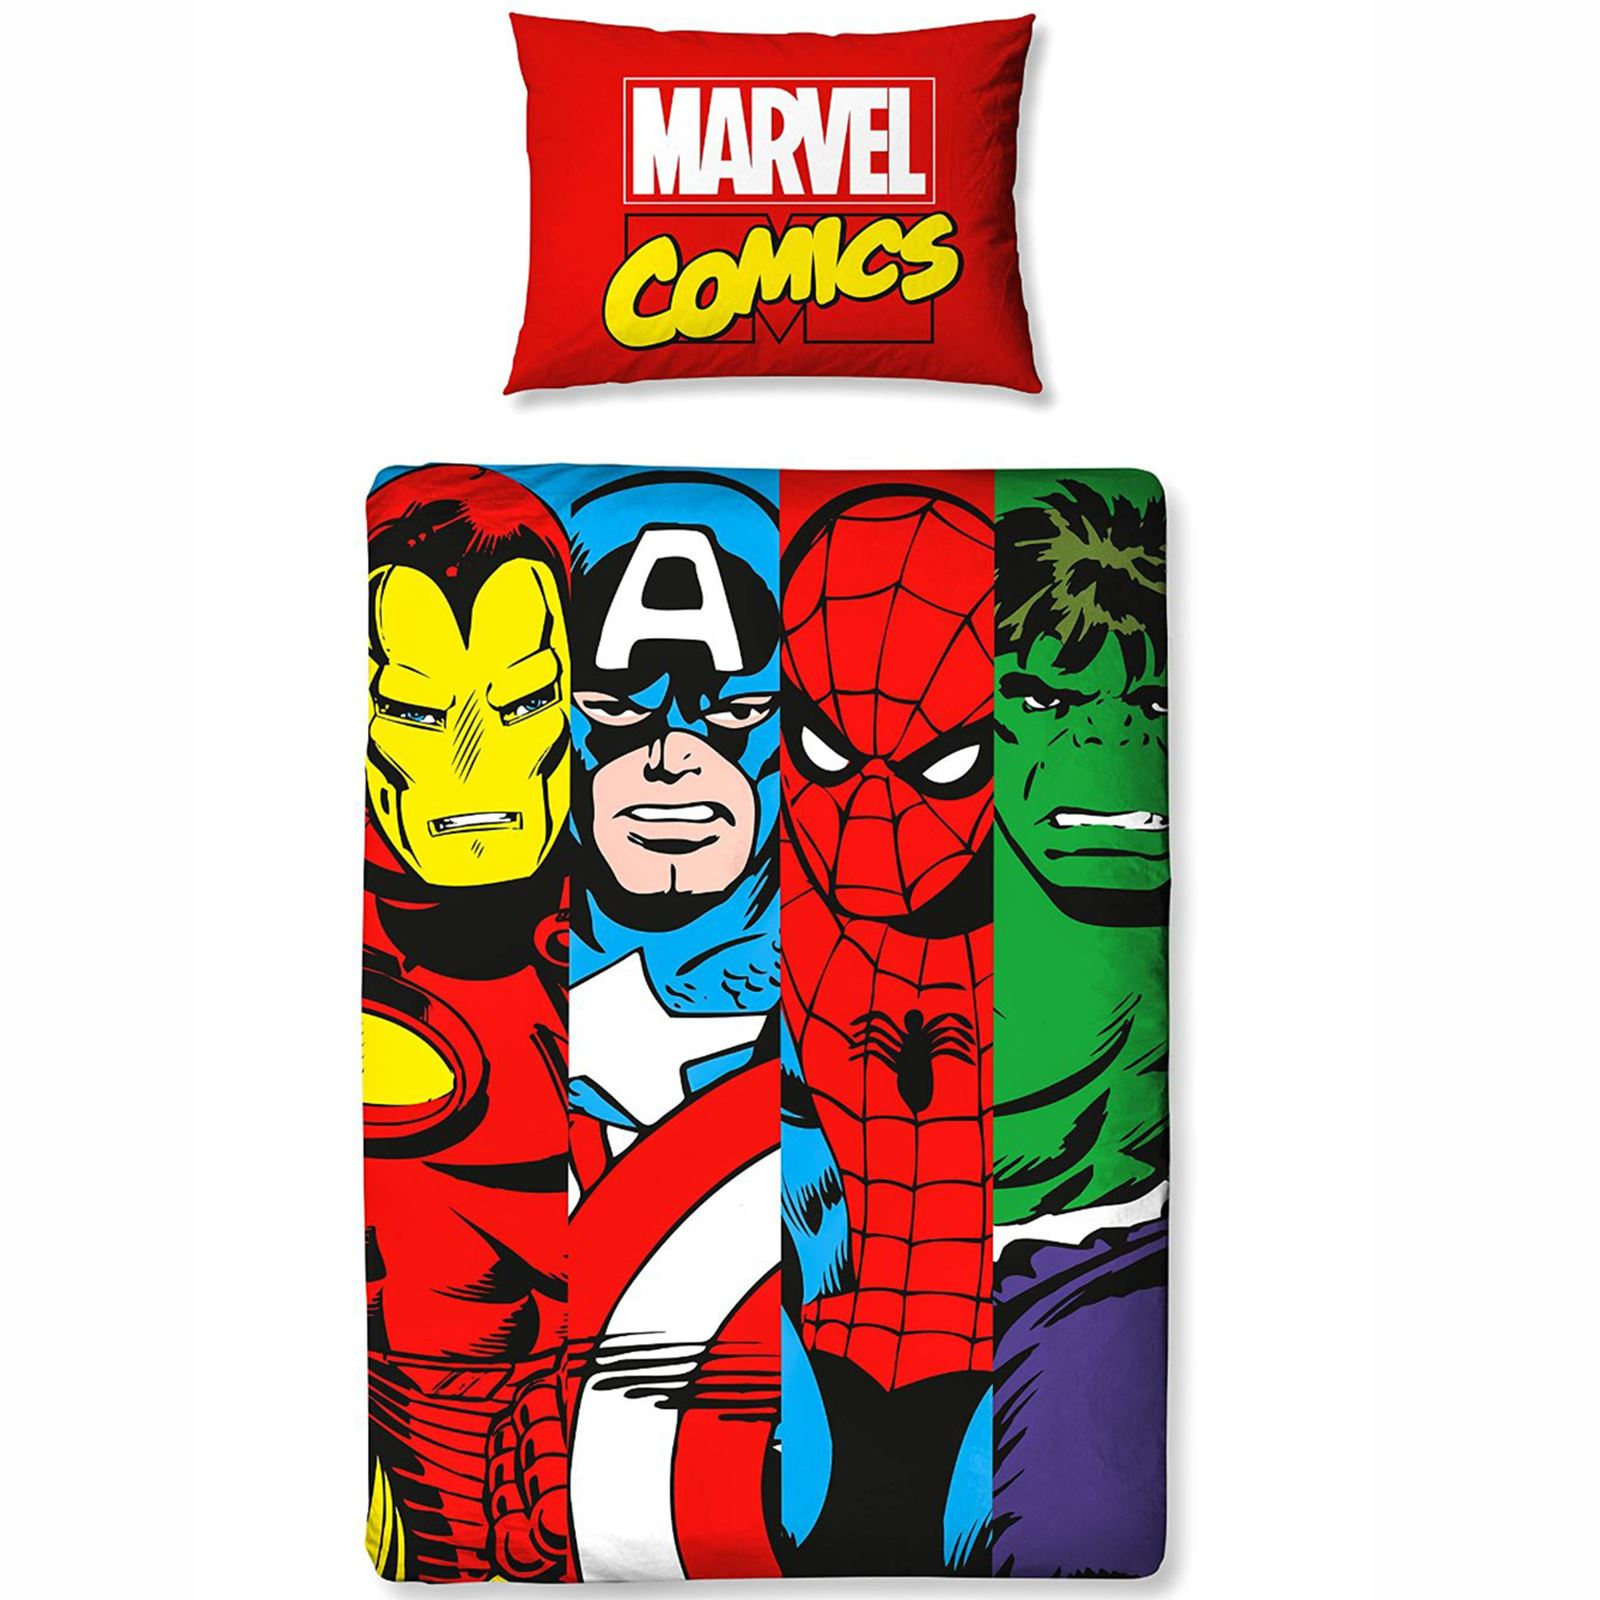 OFFICIAL-AVENGERS-MARVEL-BEDROOM-DUVETS-CURTAINS-CUSHION-BLANKET-CLOCK-amp-MORE